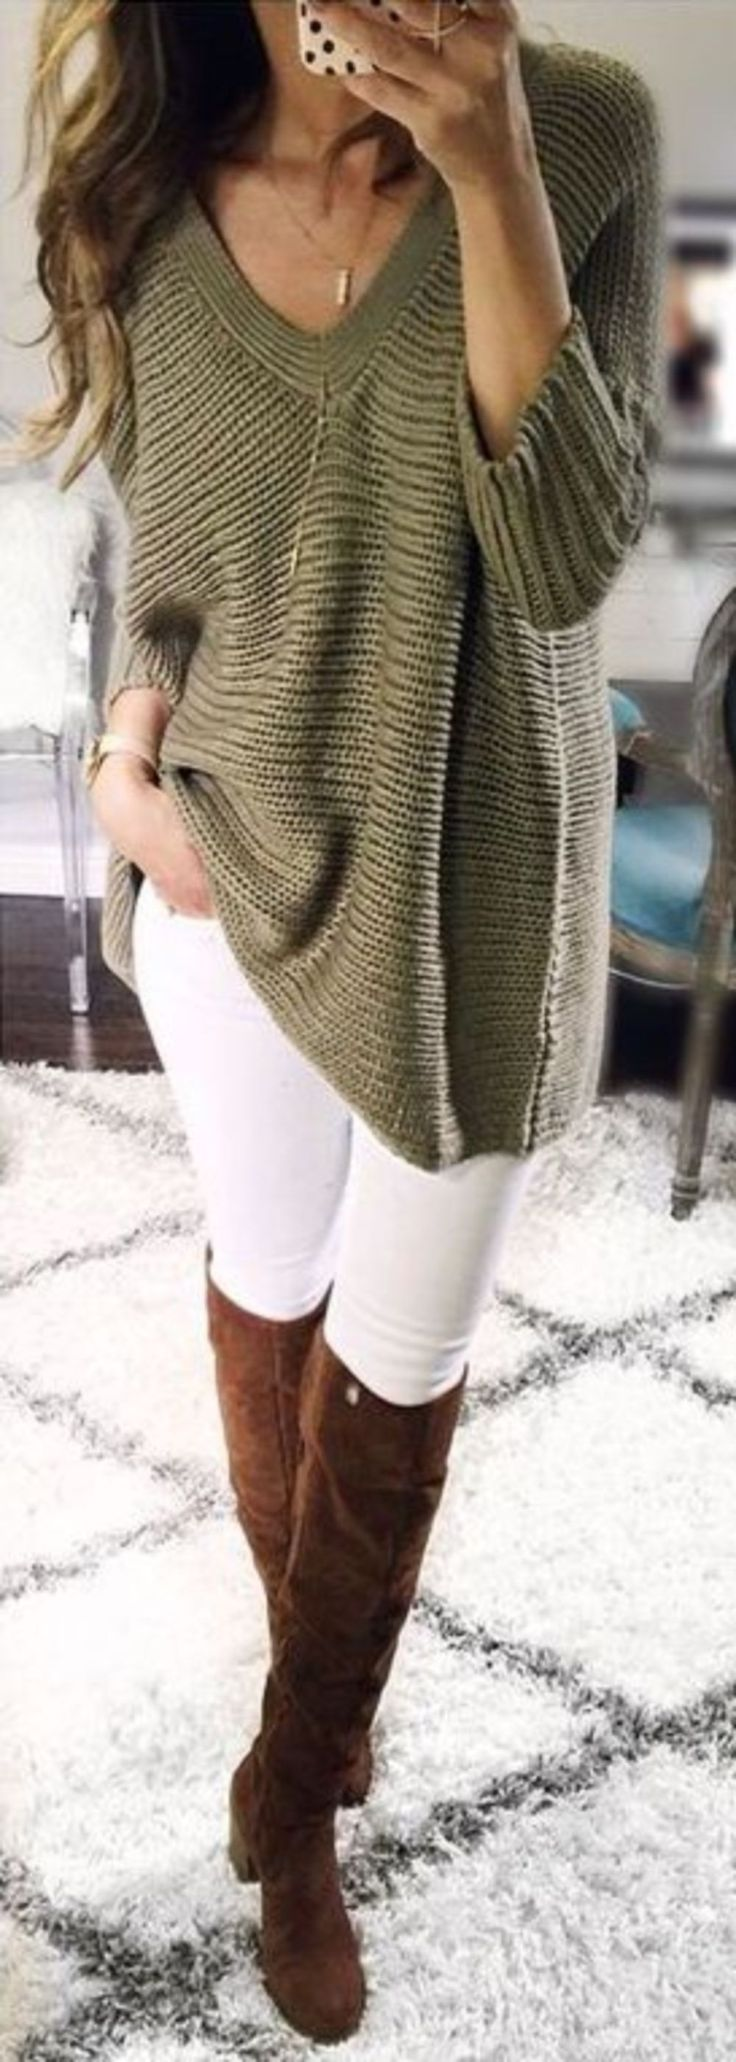 Awesome 38 Trending Winter Outfits to Upgrade your Wardrobe from https://www.fashionetter.com/2017/06/04/38-trending-winter-outfits-upgrade-wardrobe/